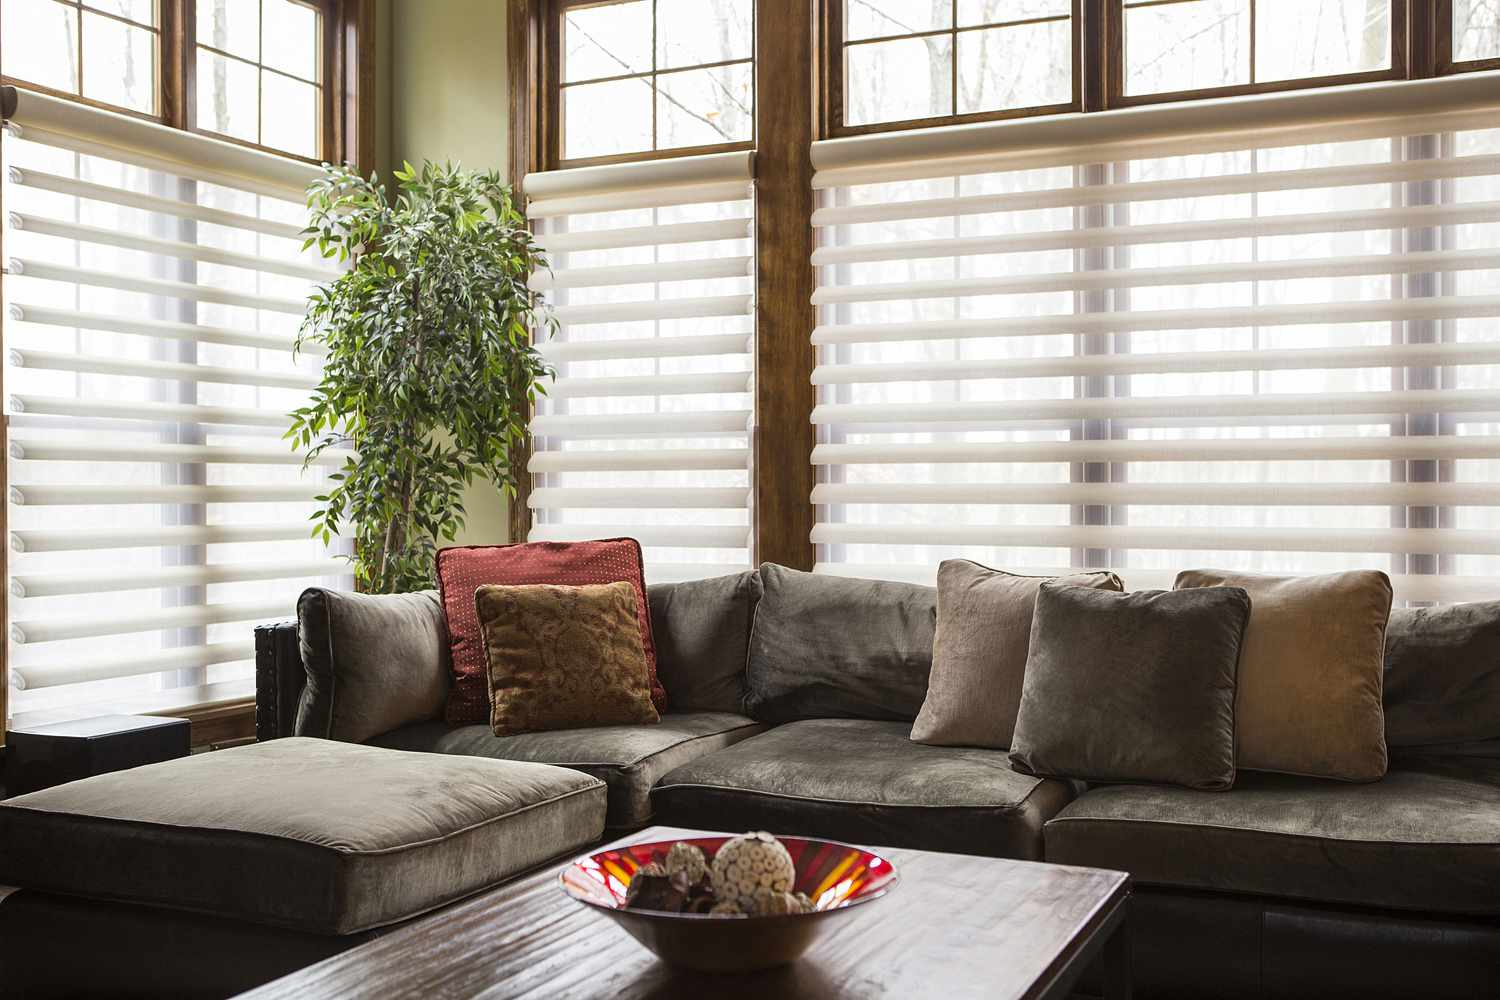 Sofa and blinds in living room